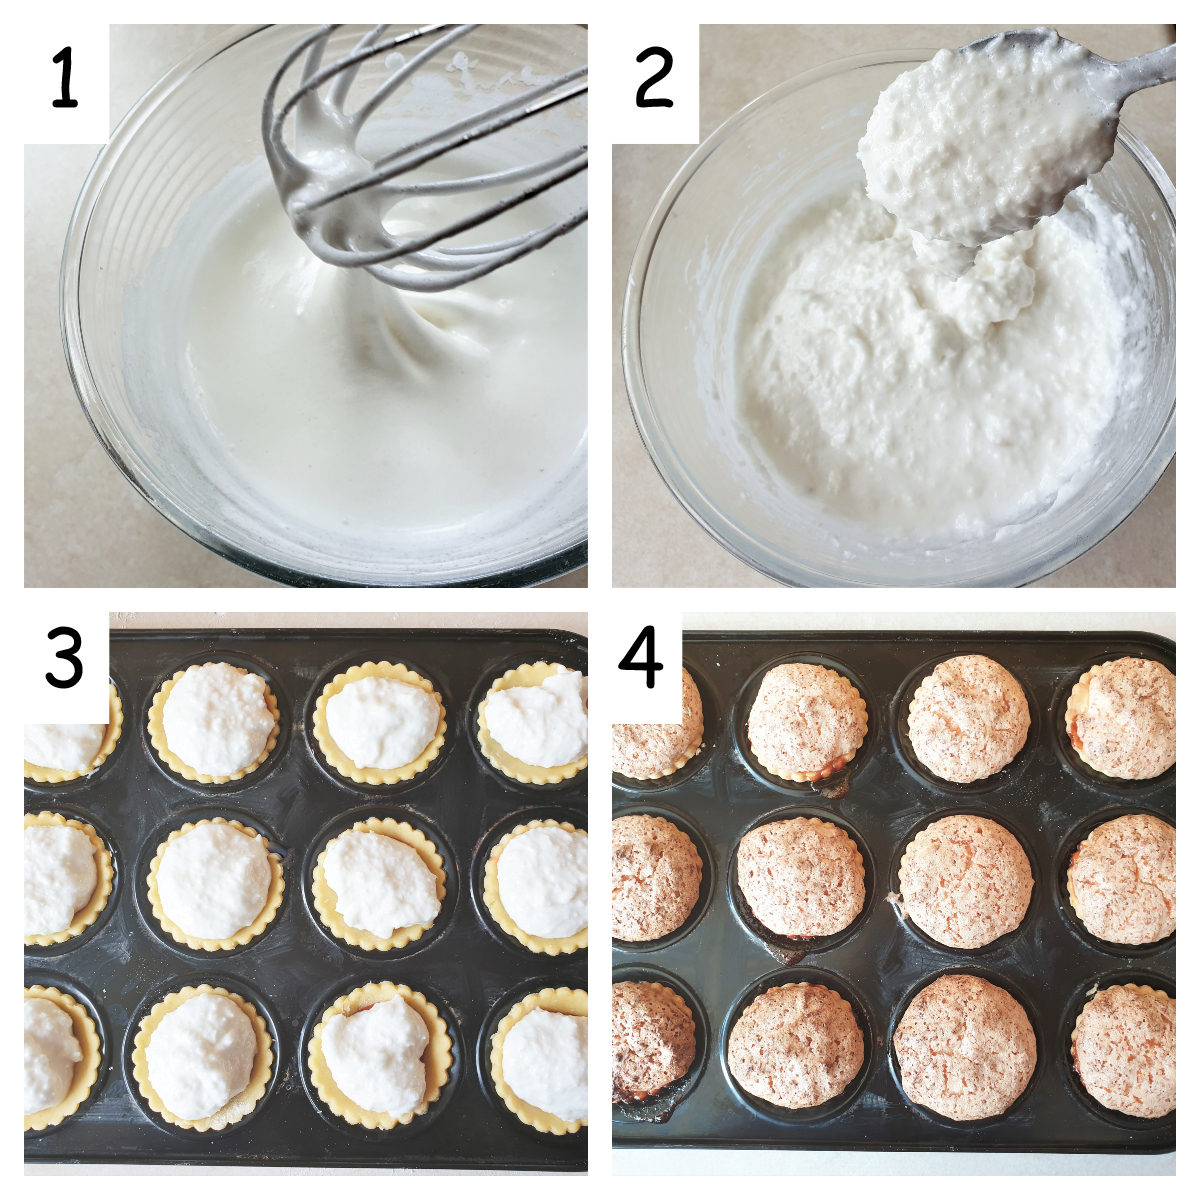 Collage showing how to cover jam tarts with meringue.